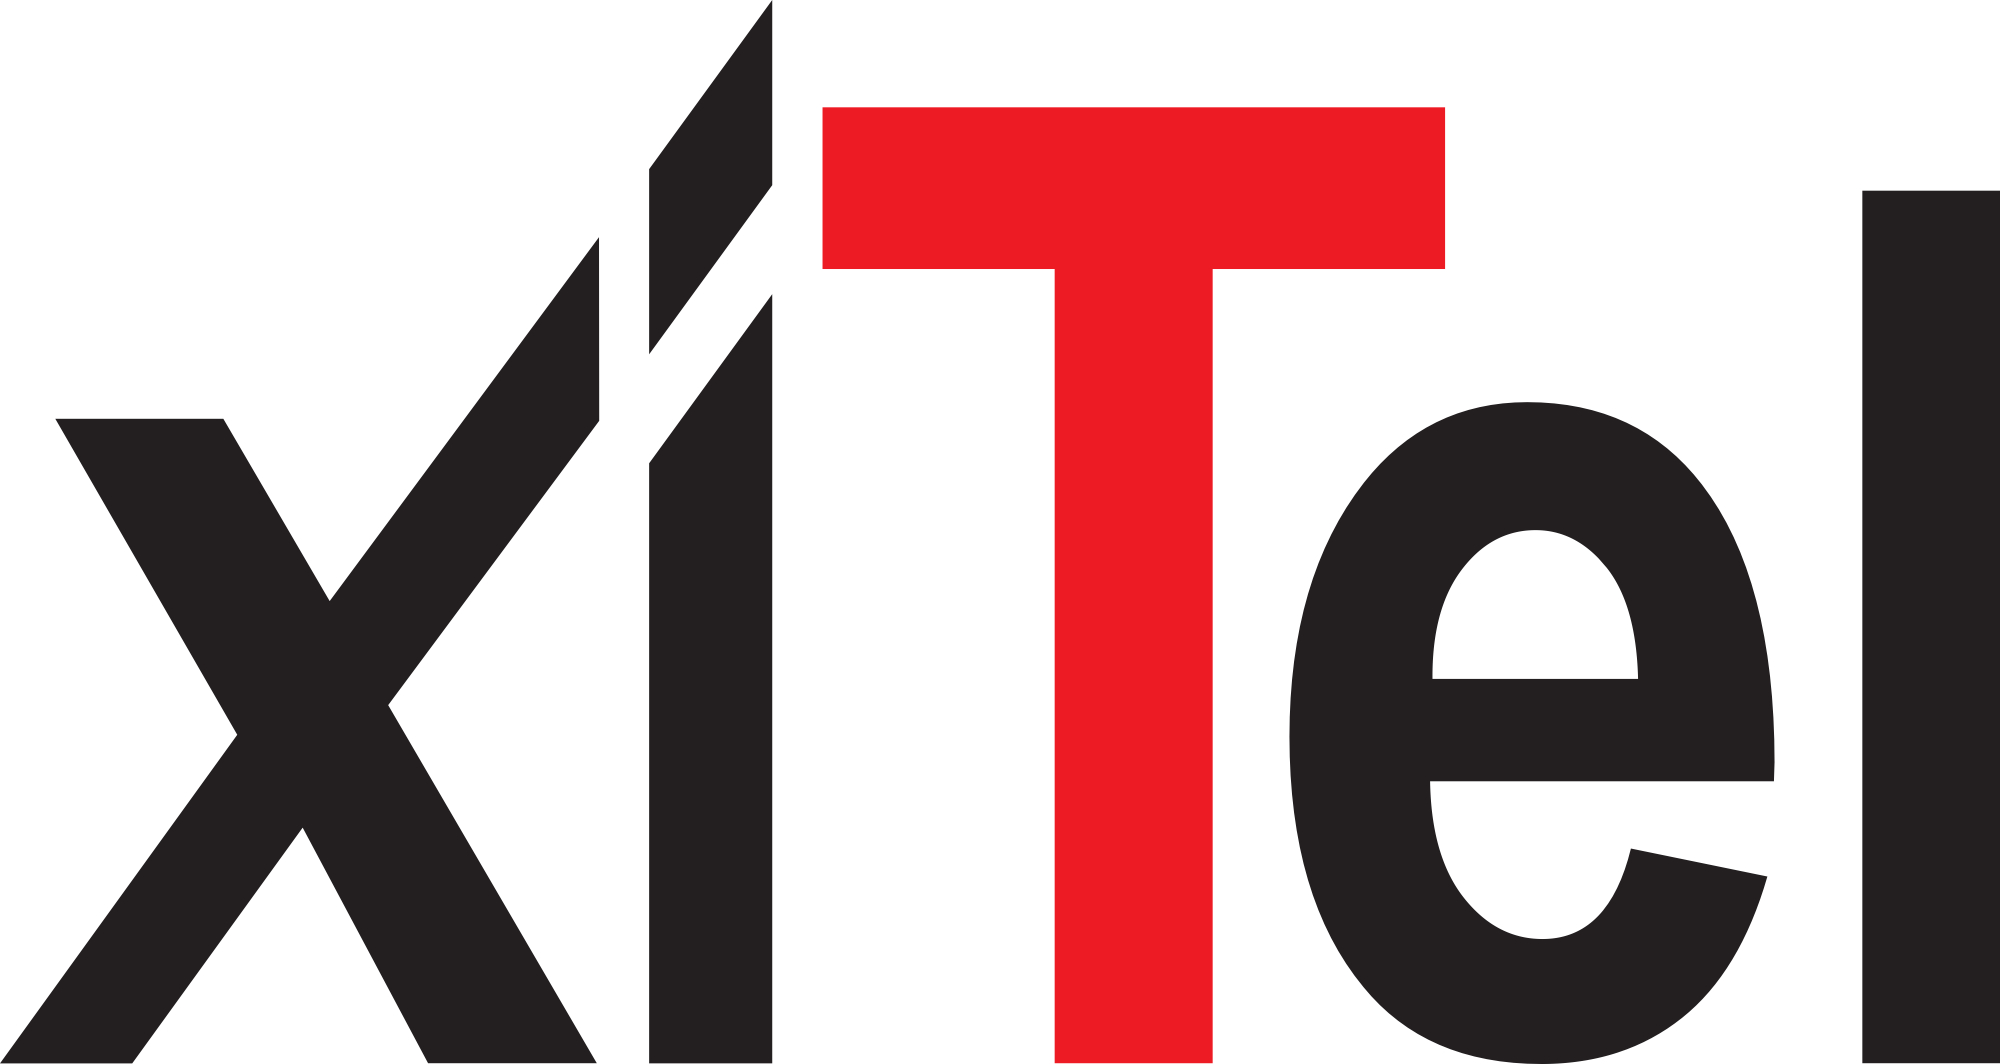 xitel Ihr Vorarlberger Kommunikationspartner